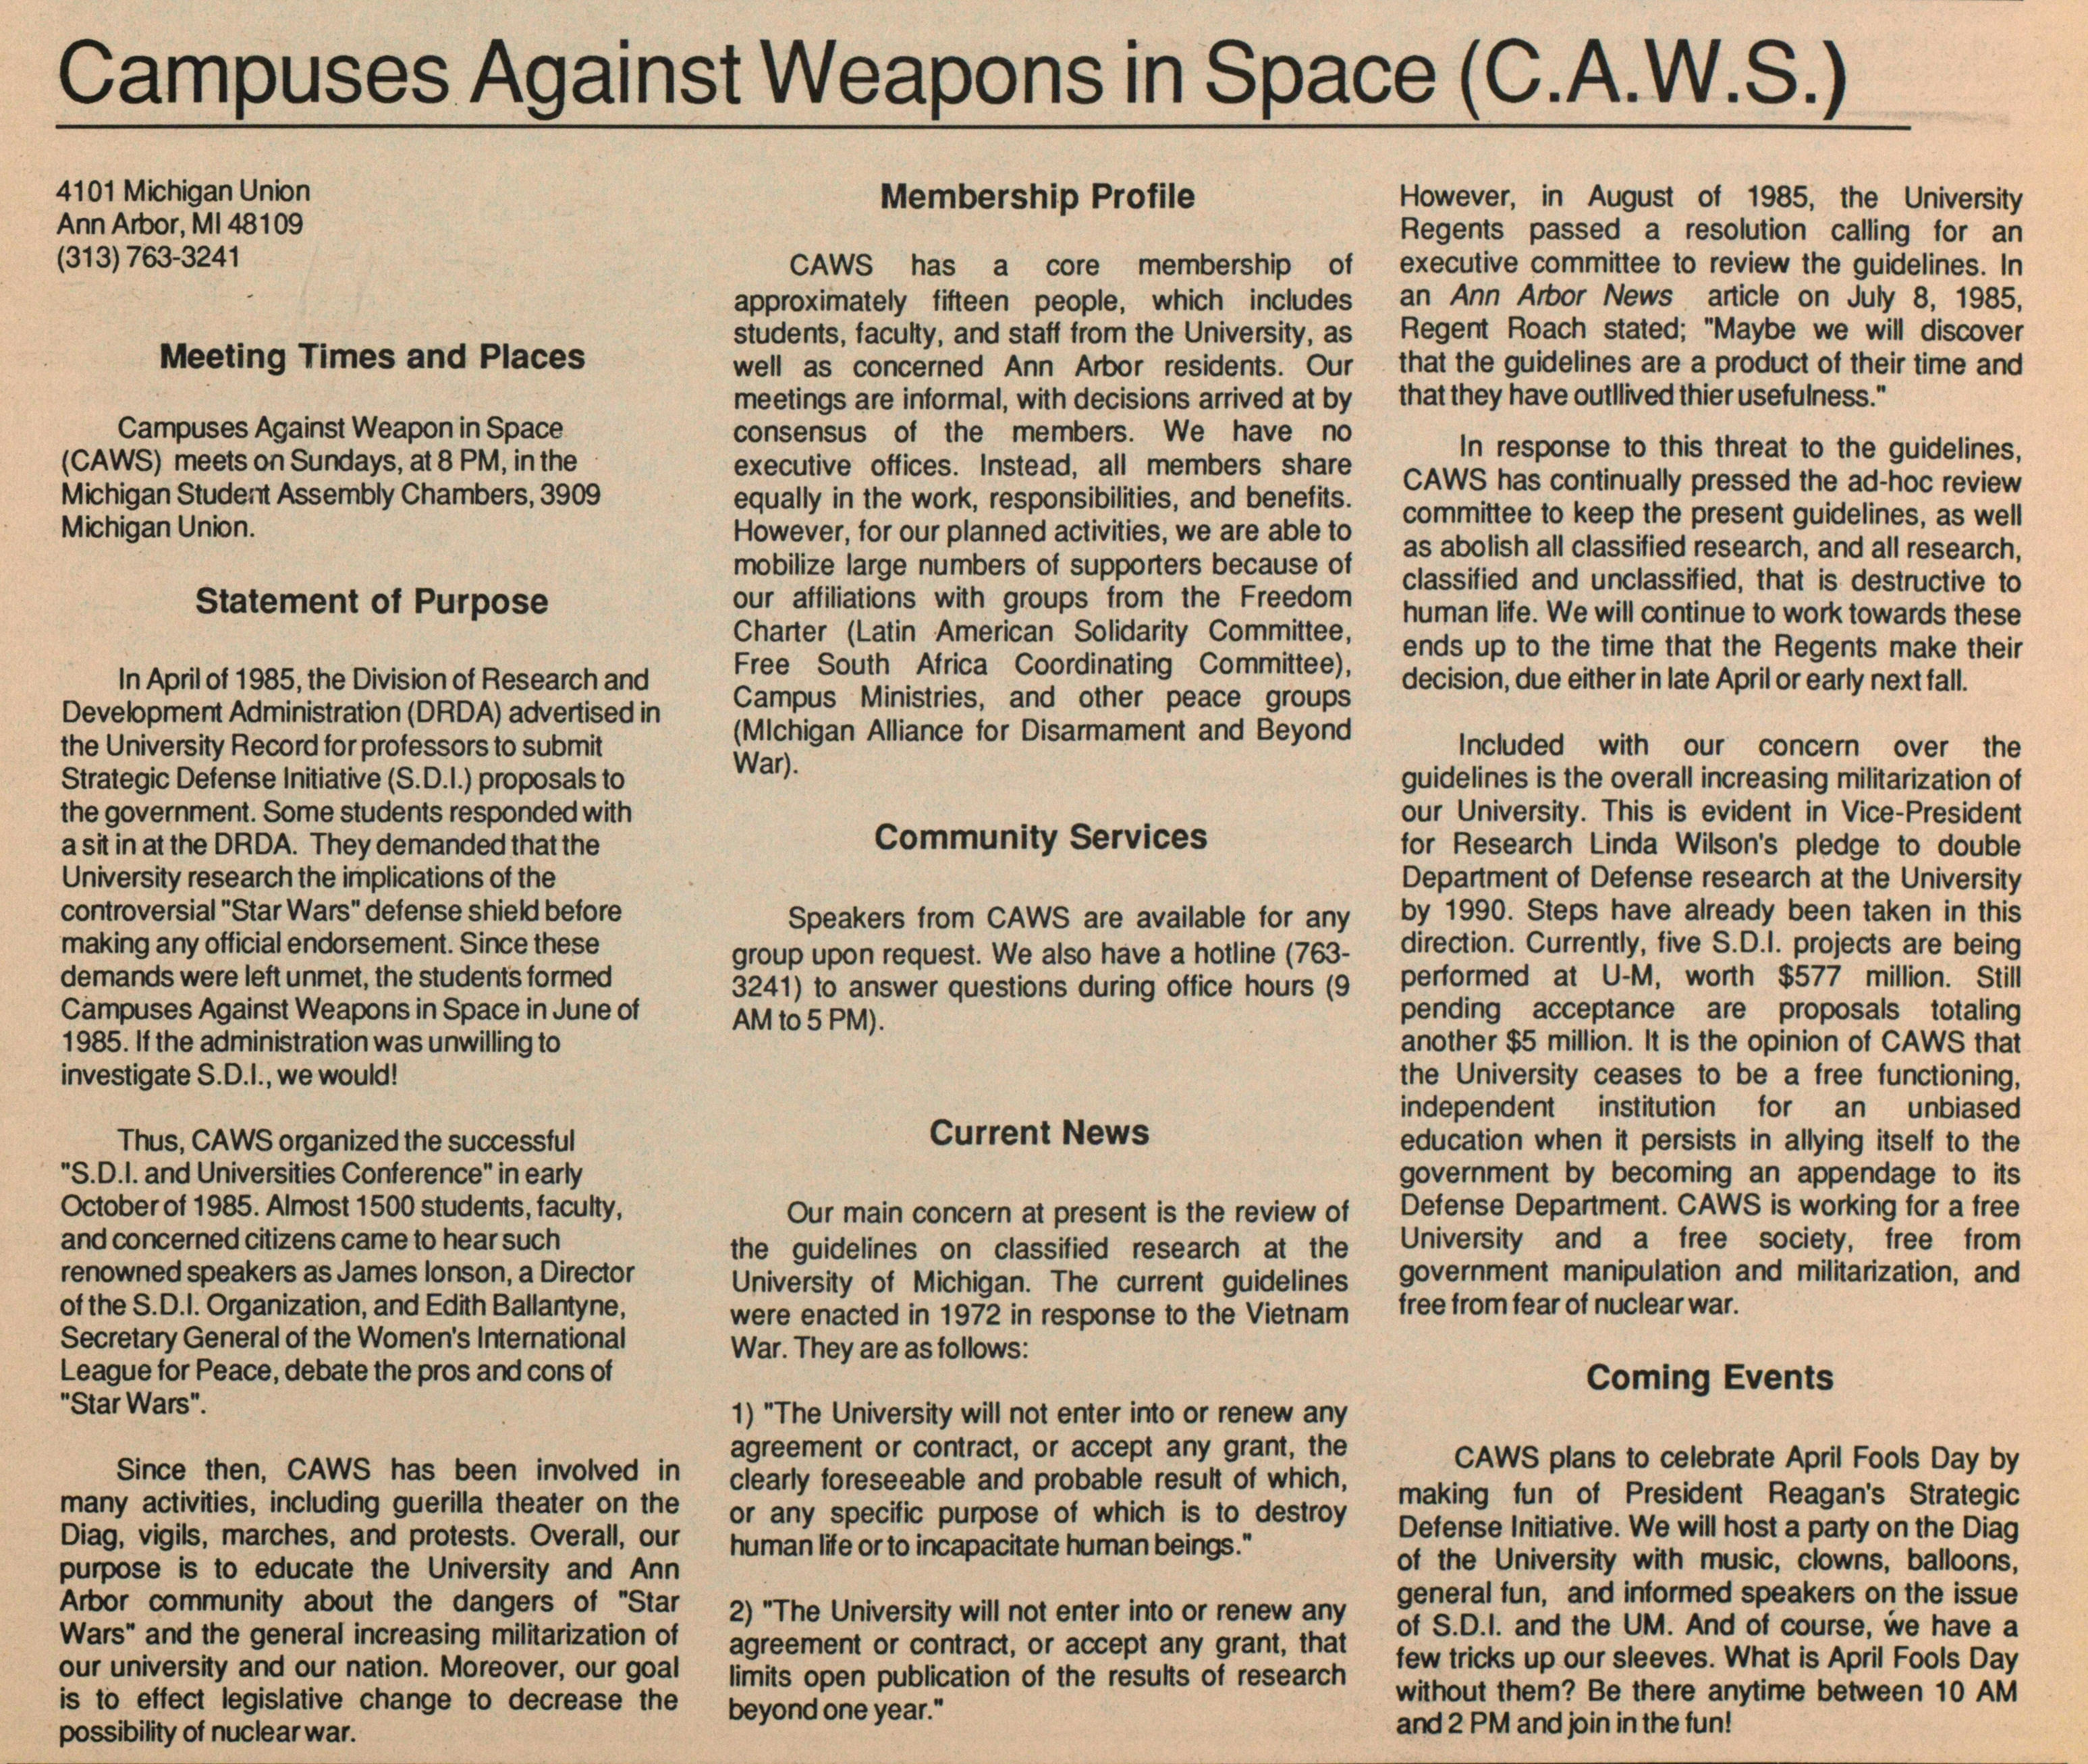 Campuses Against Weapons In Space (C.A.W.S.) image